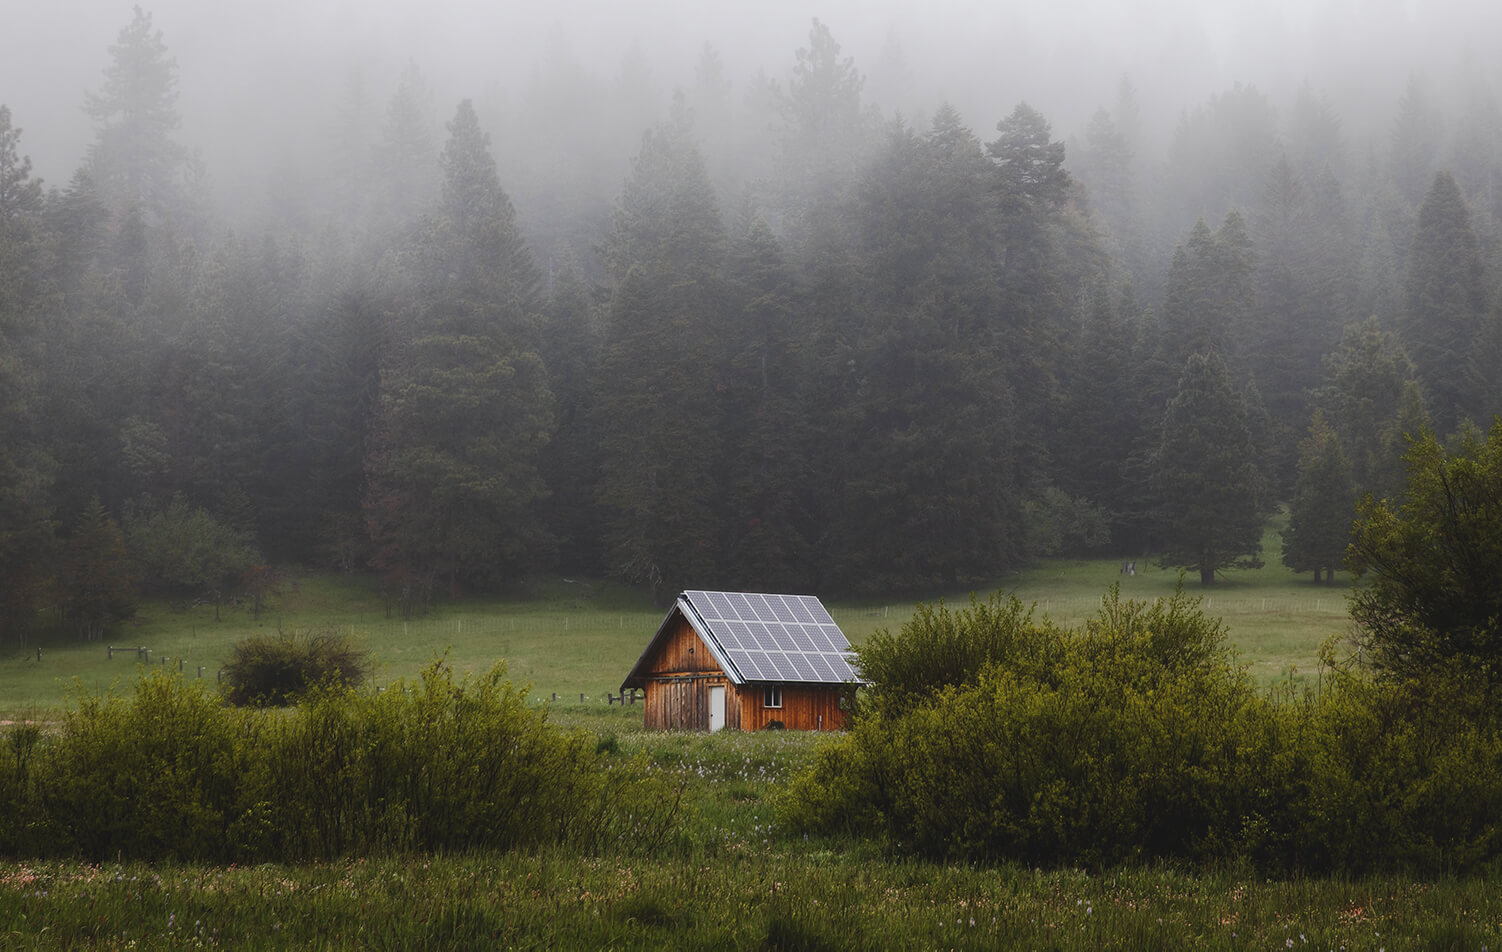 A lone cabin in the countryside